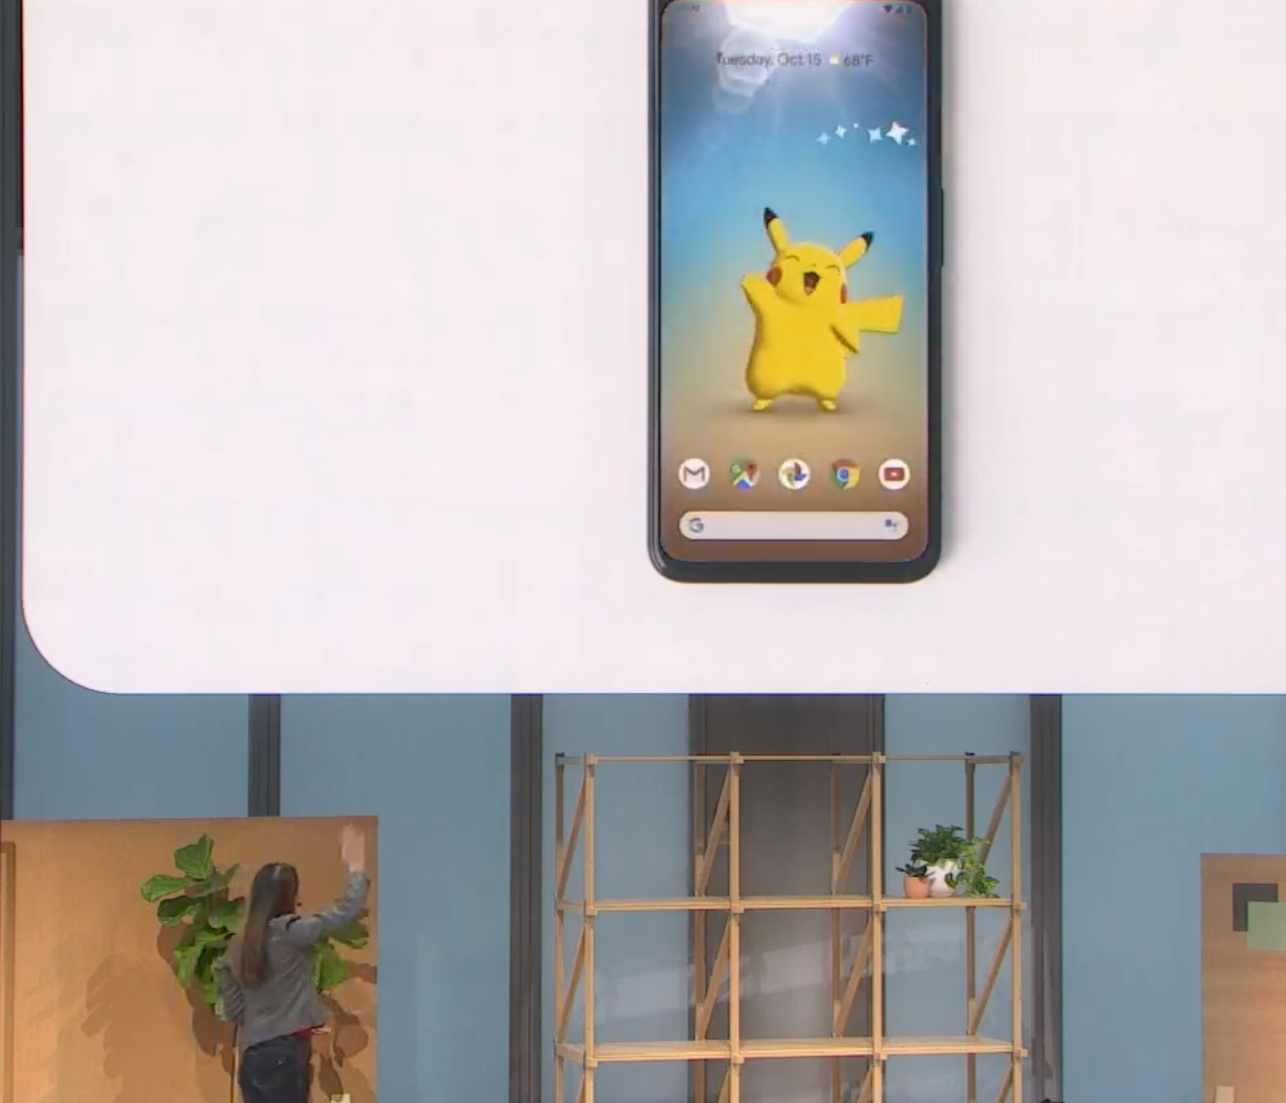 A faked representation of waving hi to a cartoon avatar on your phone screen. We doubt the Soli sensor reaches as far as this projector mock-up looks.